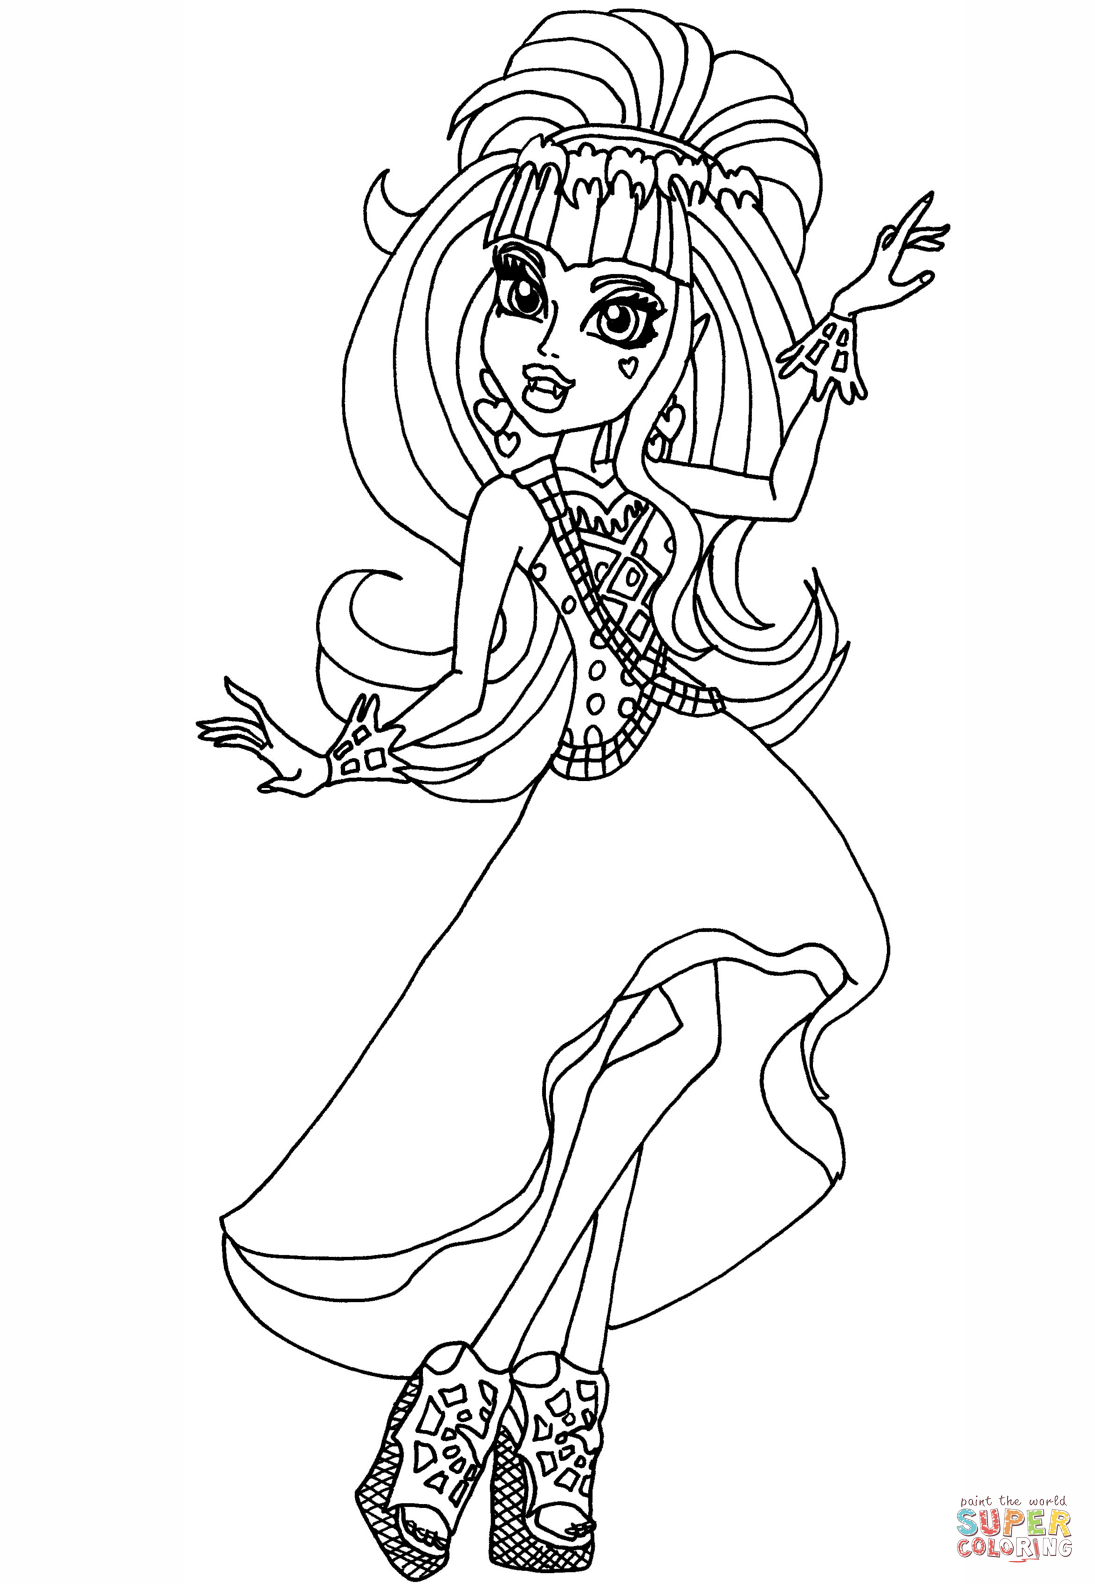 Draculaura 13 Wishes Coloring Page